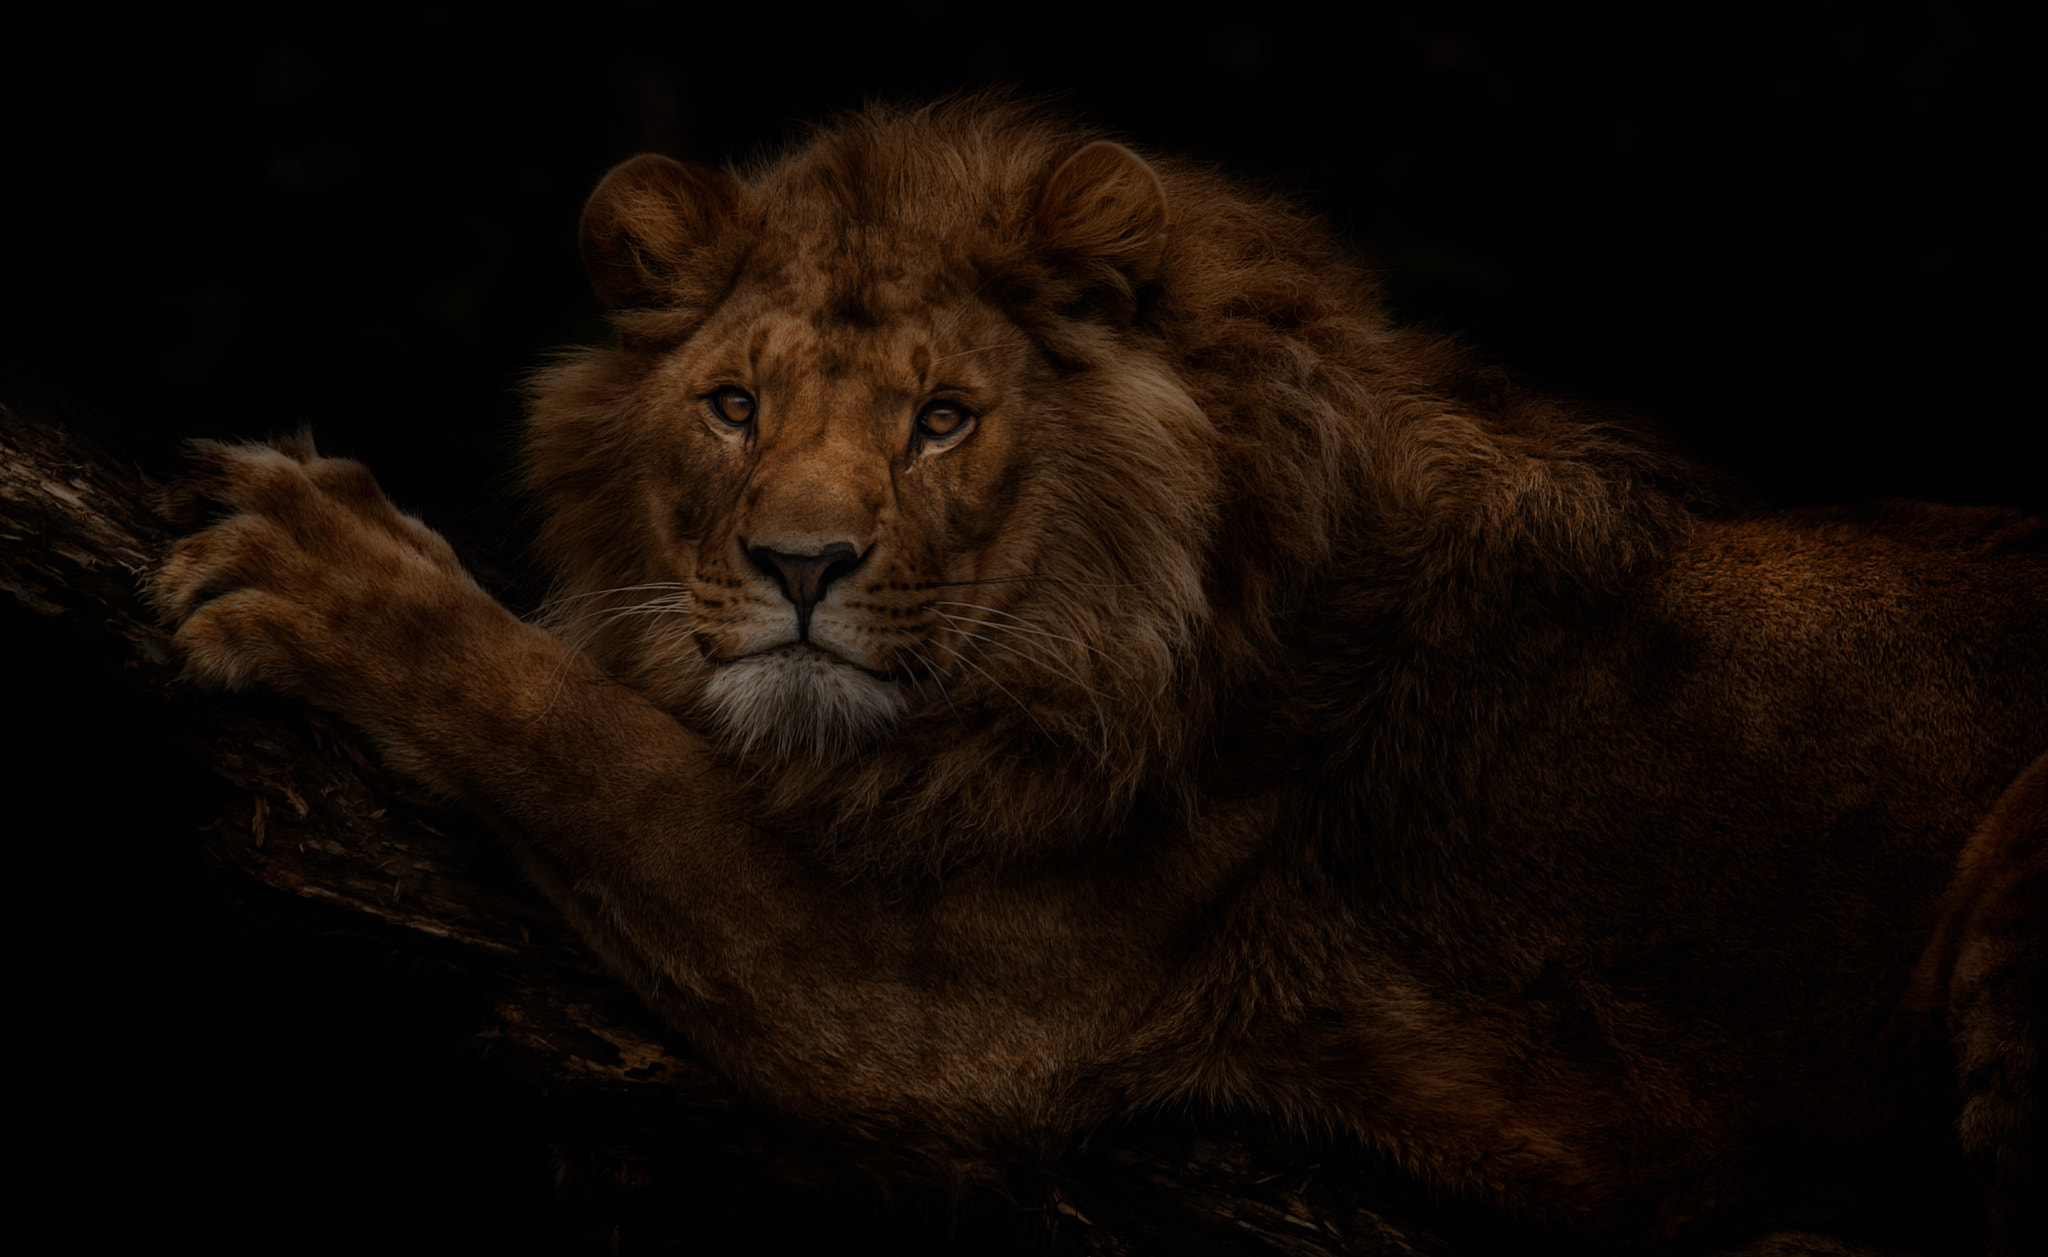 Photograph The Lion's Tree by Denis Van Linden on 500px